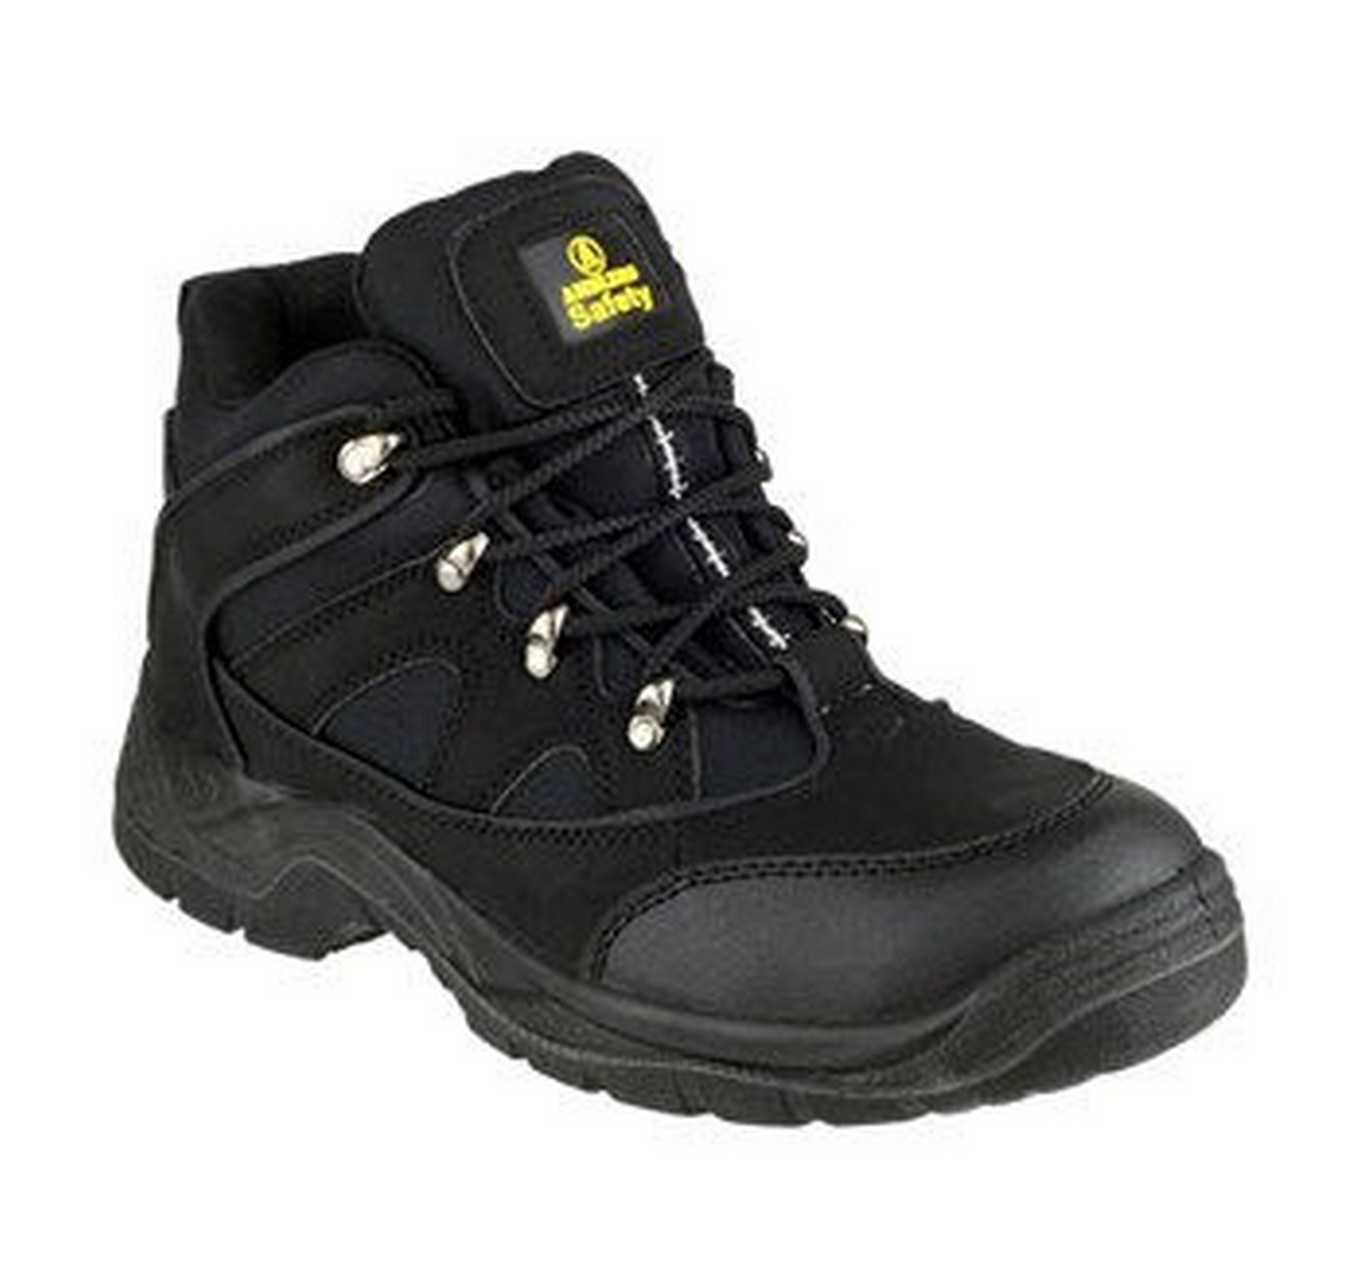 Safety Boot Amblers Fs151 9